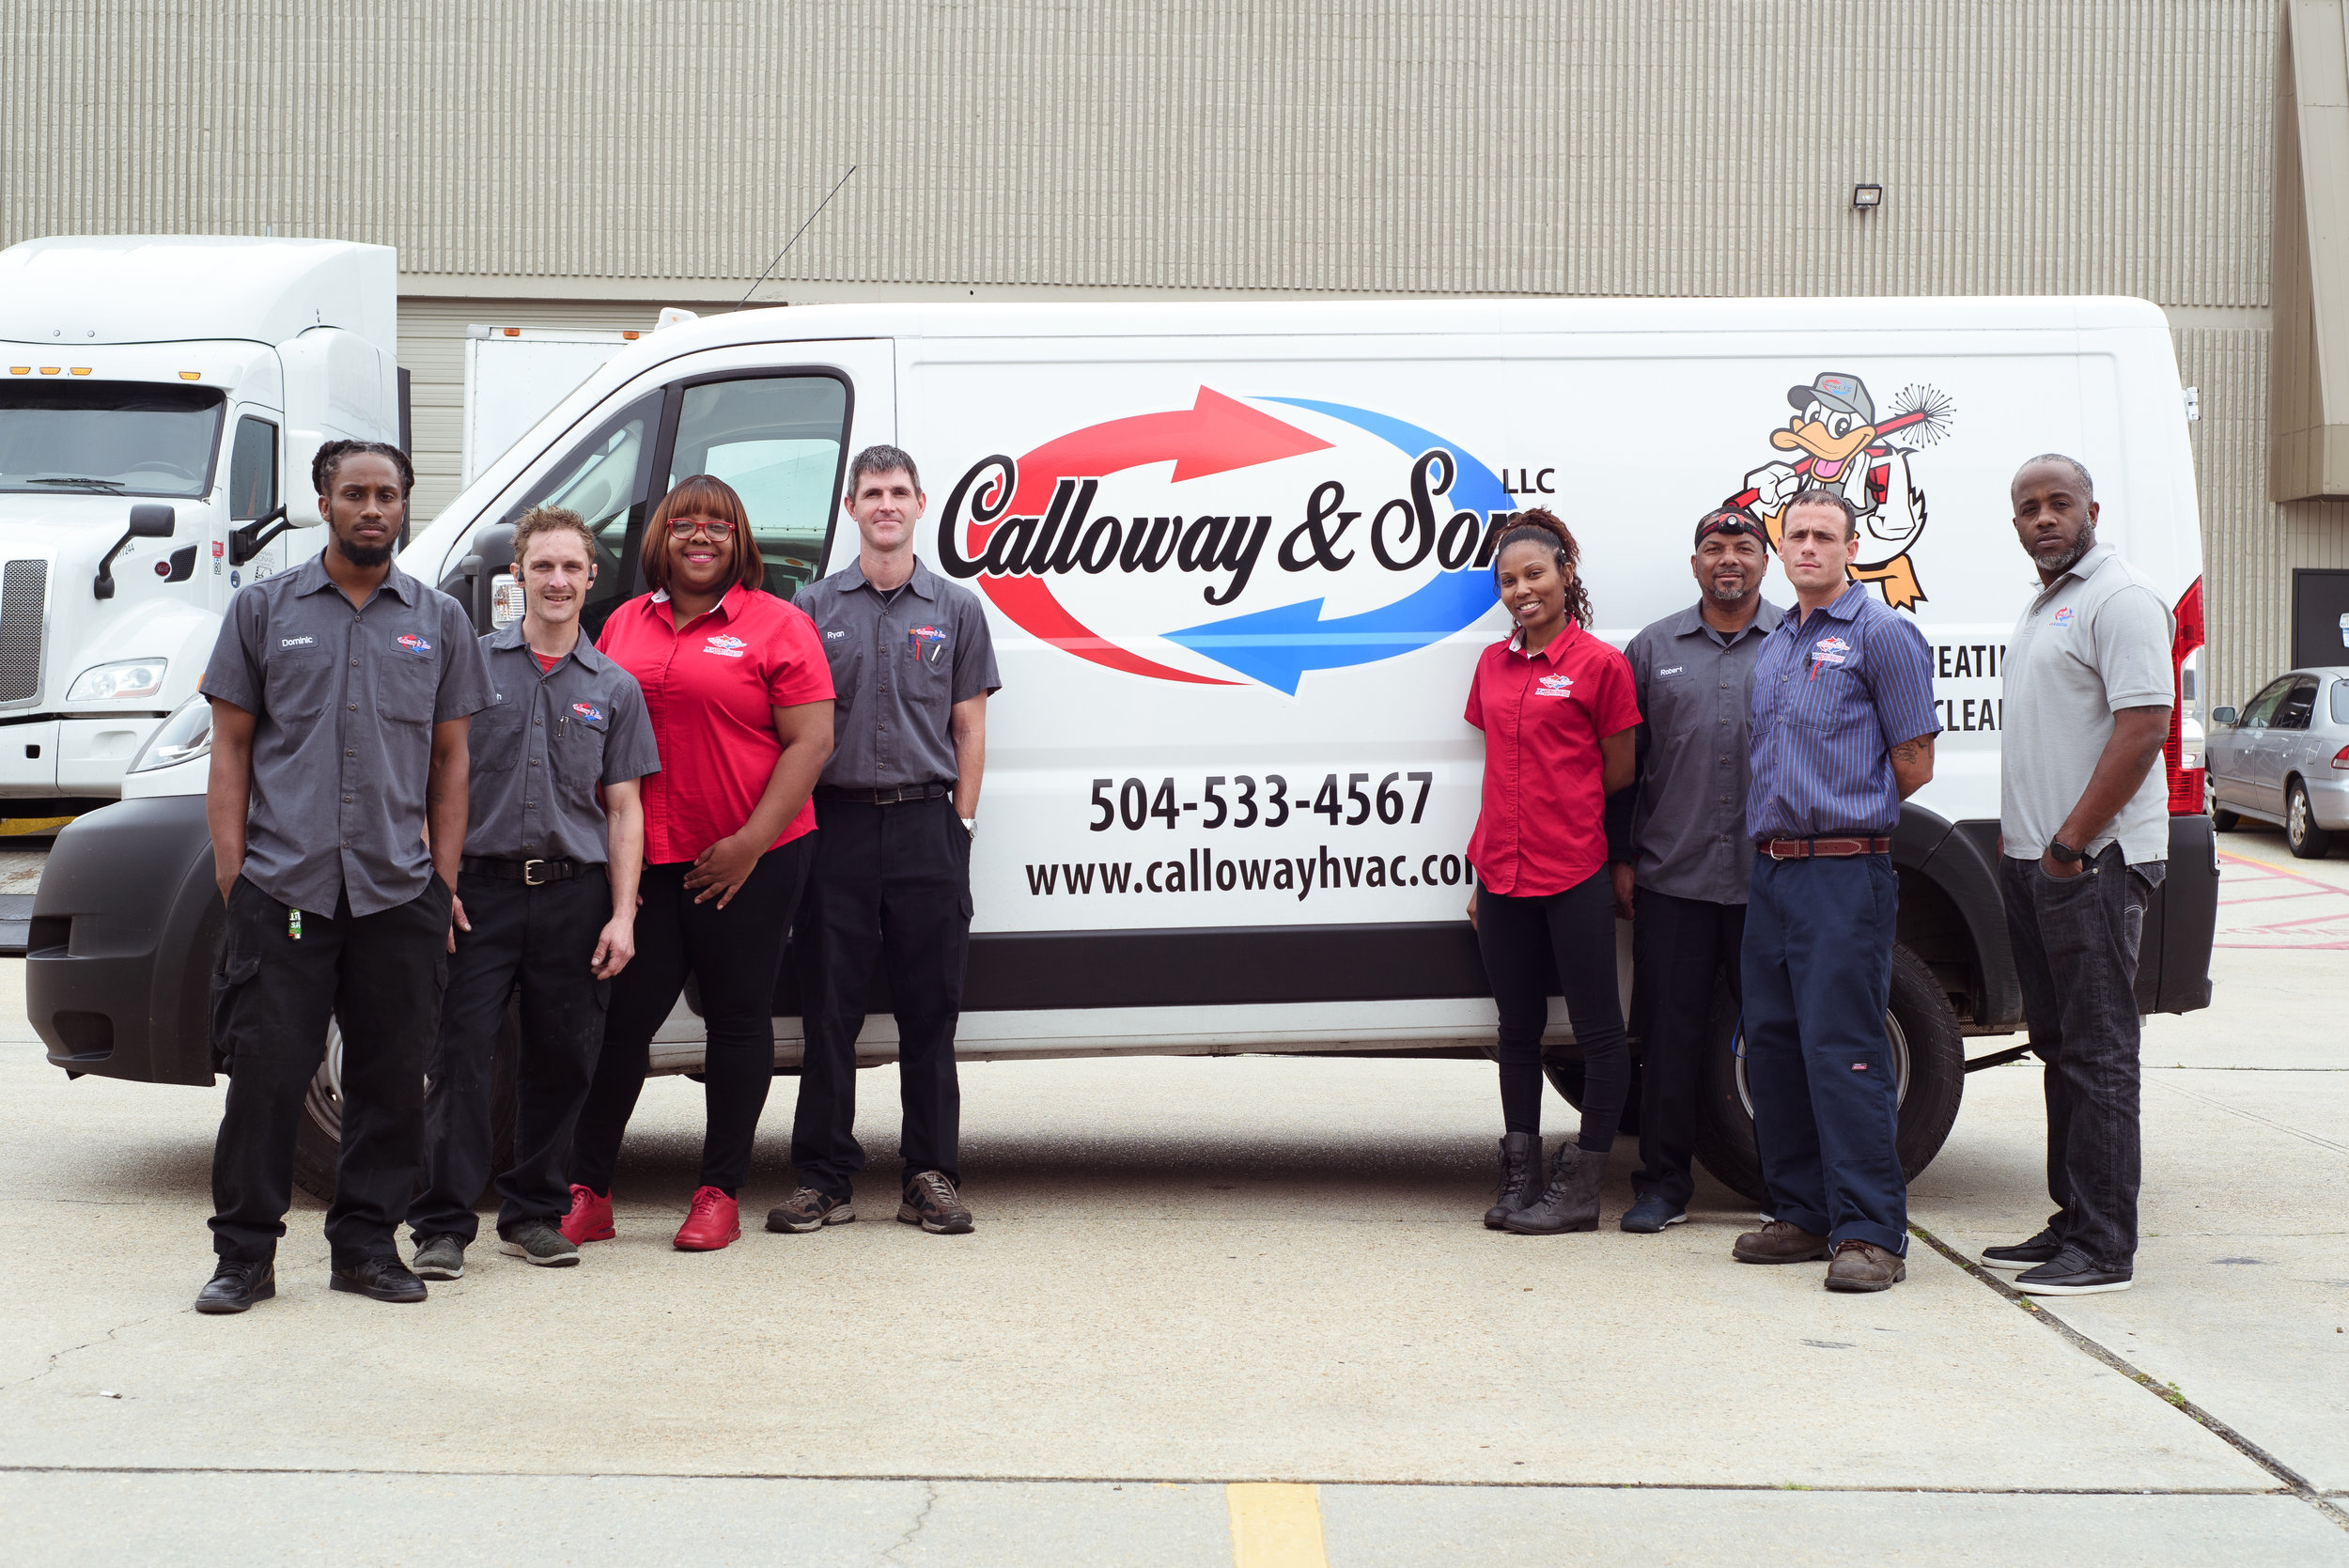 Calloway & Sons AC and Heating